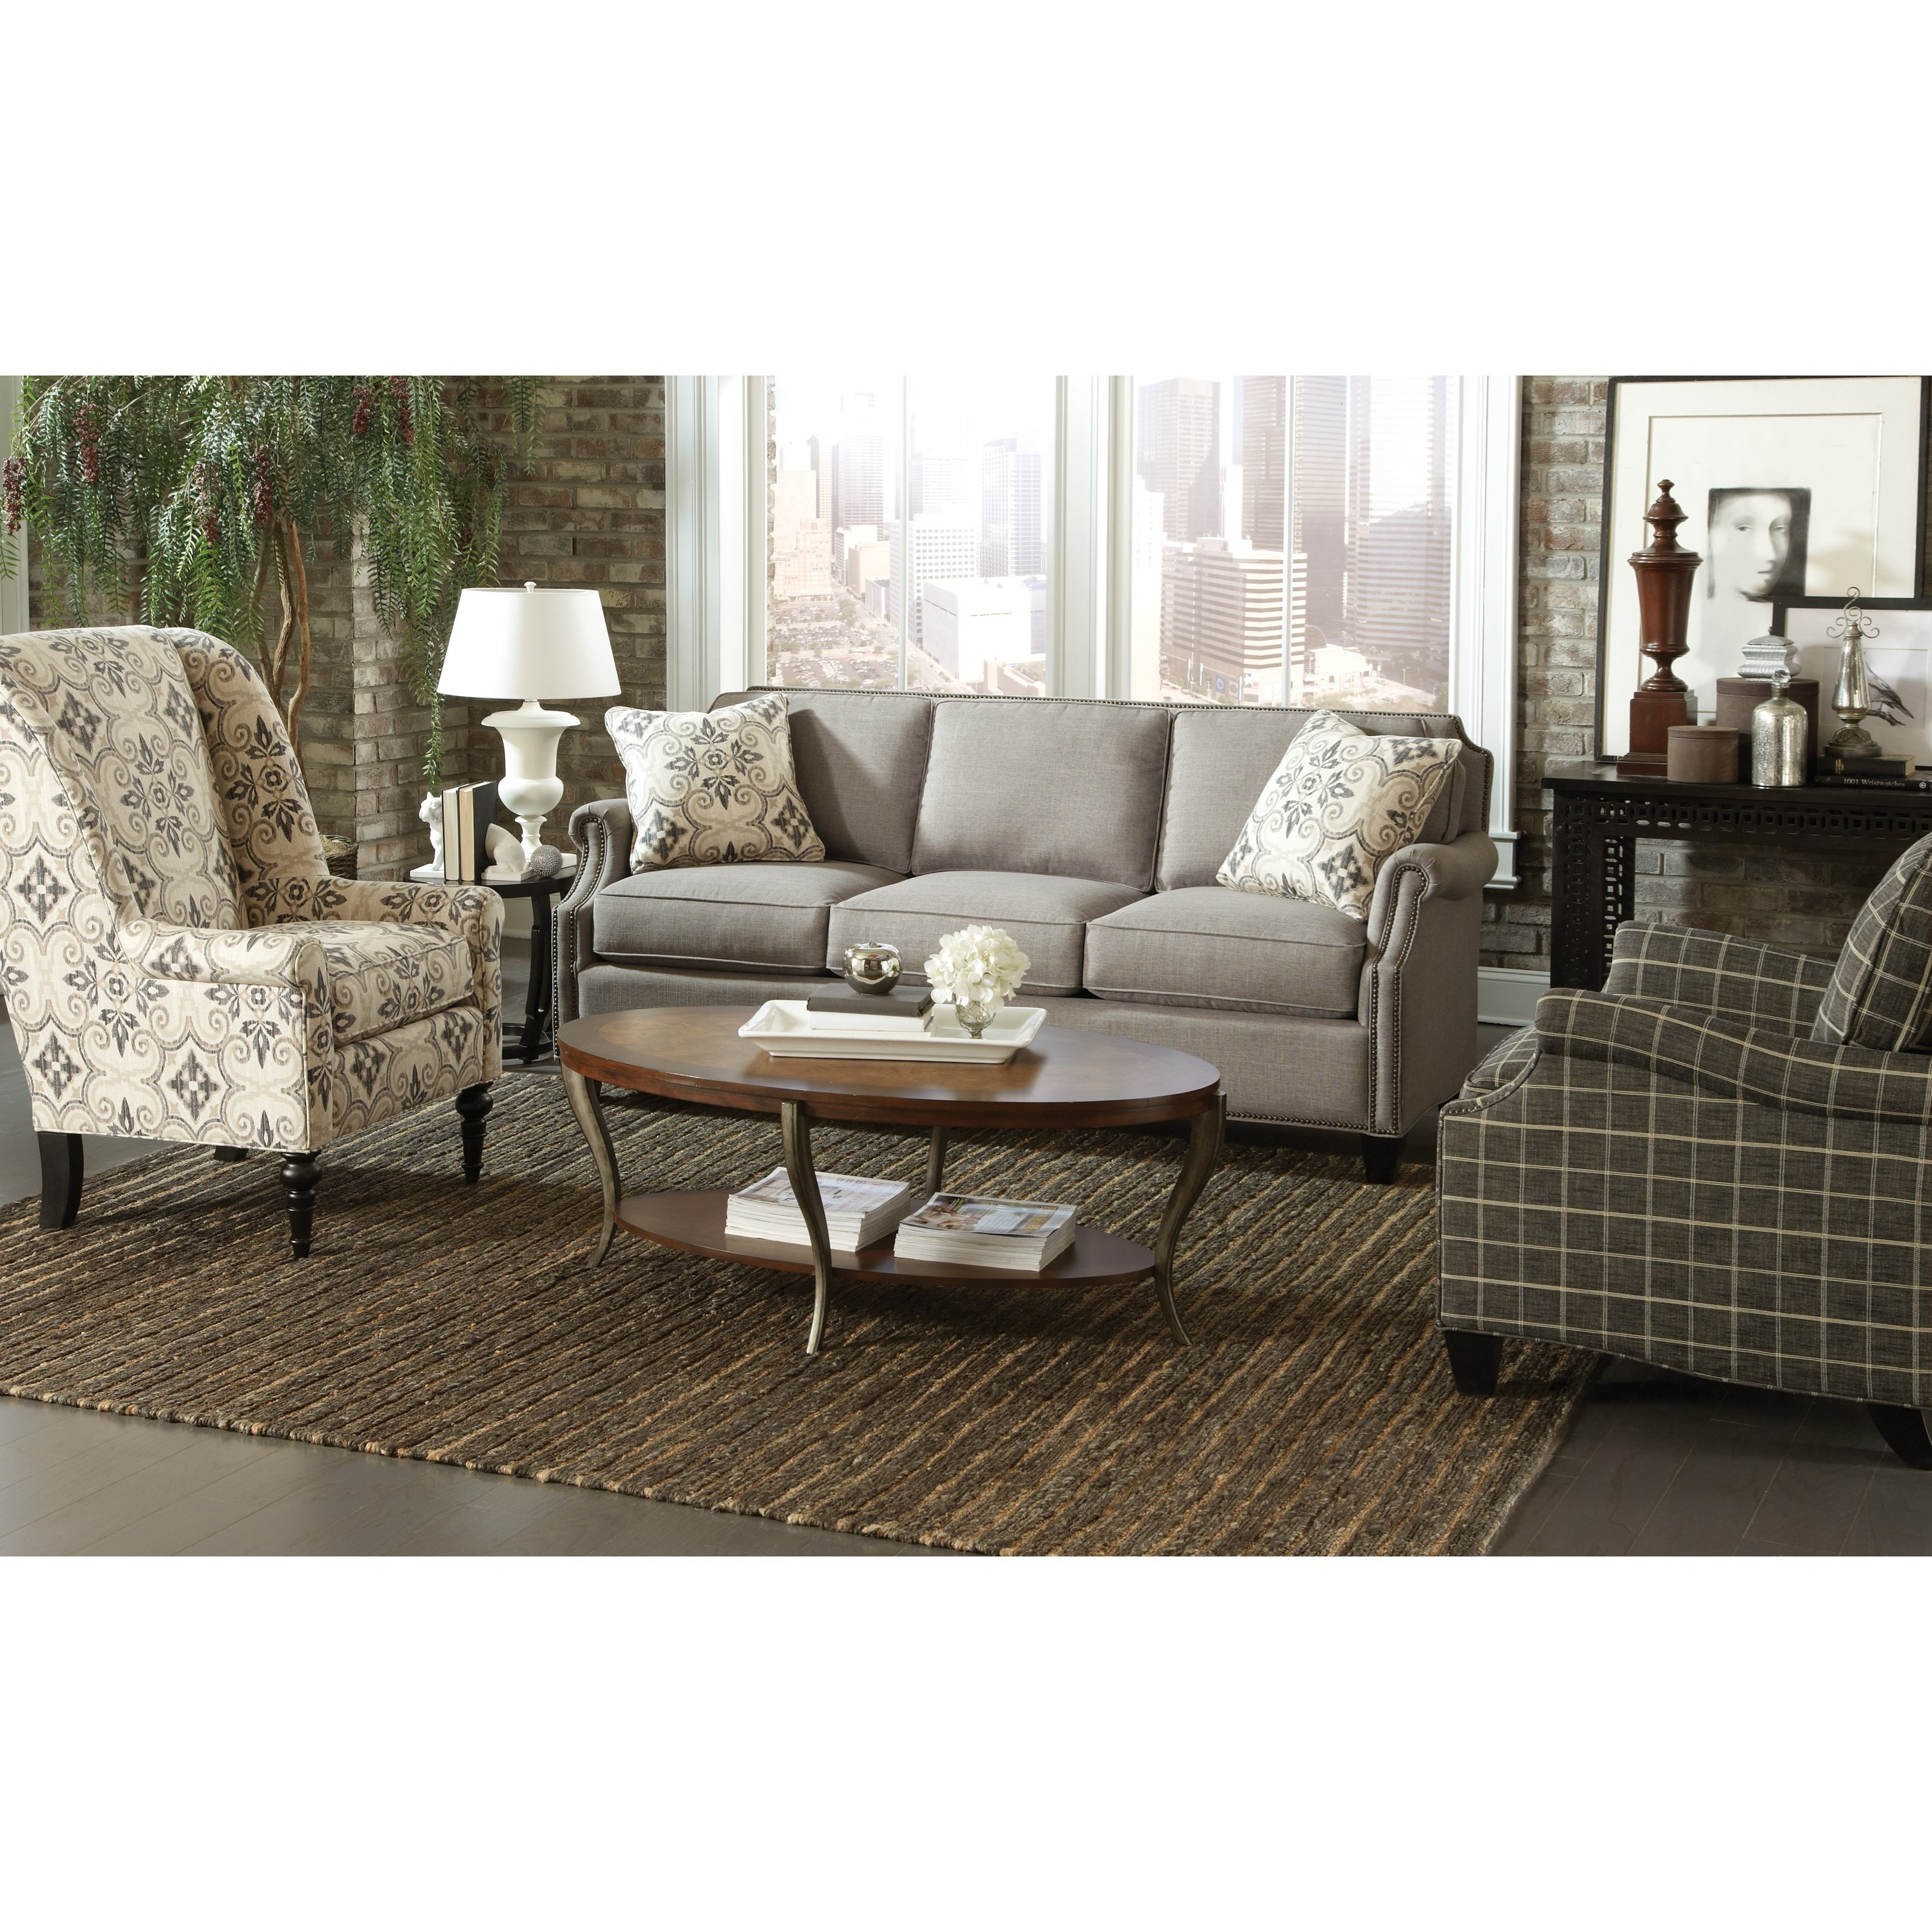 938350BD Living Room Group by Craftmaster at Esprit Decor Home Furnishings